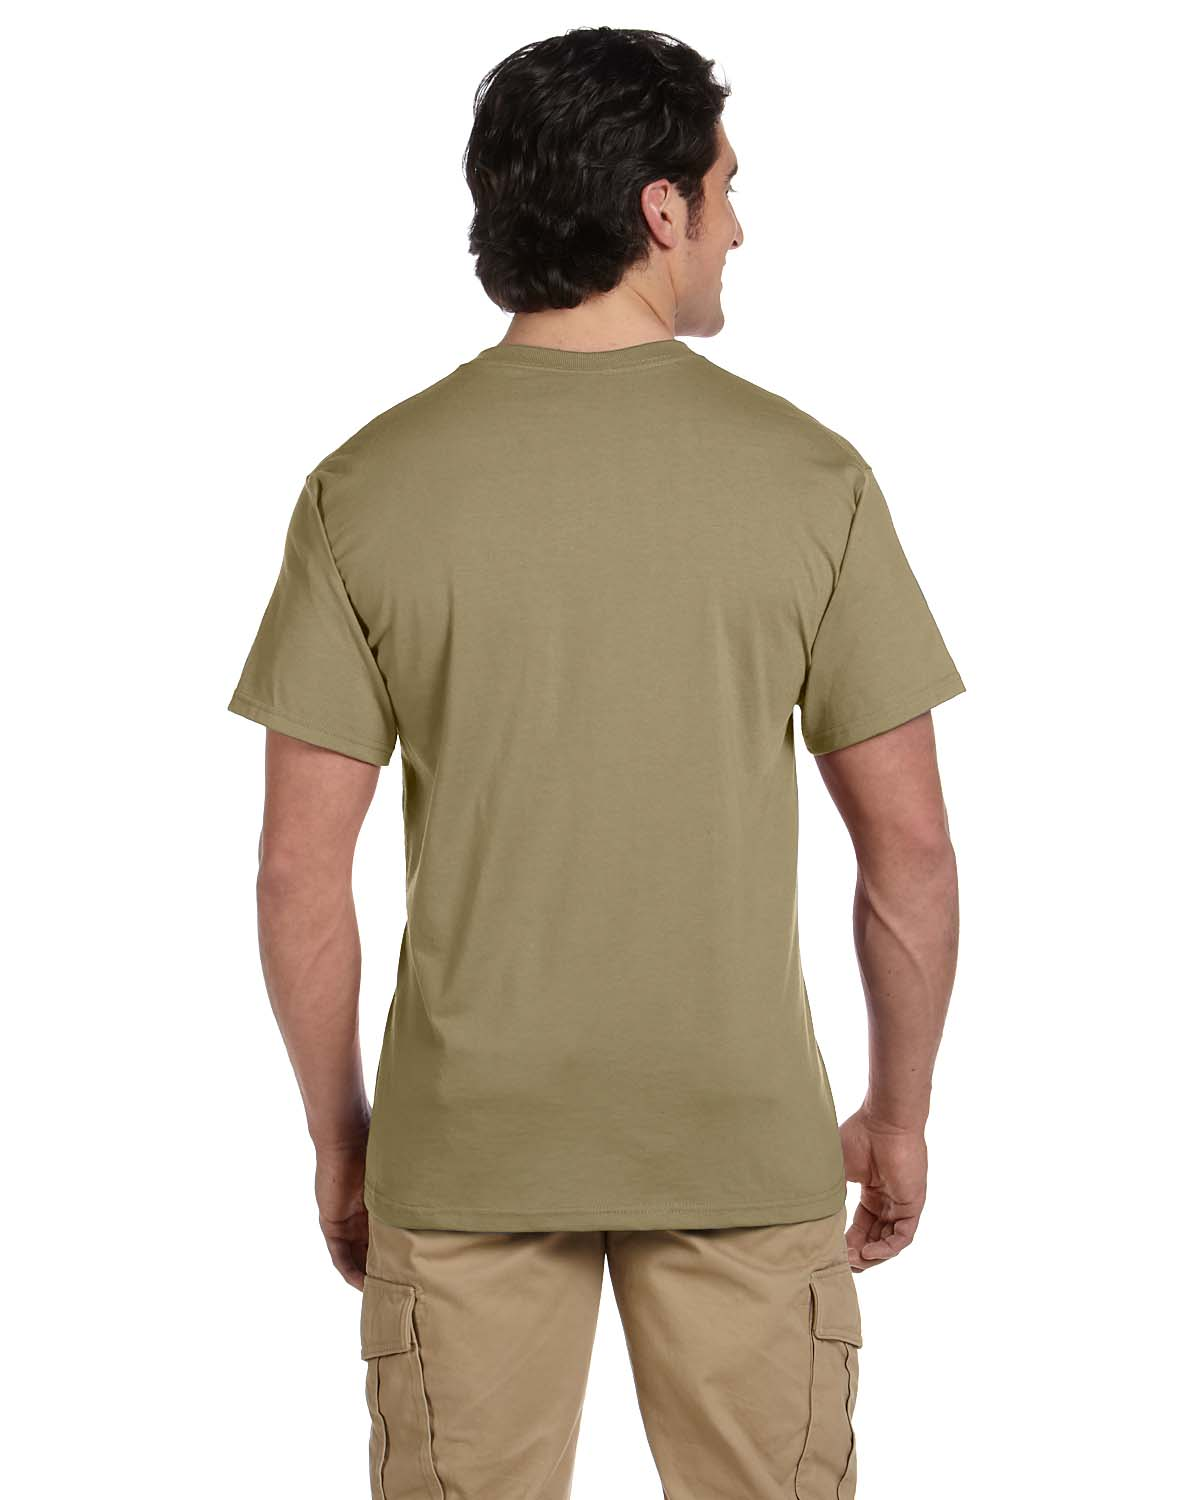 Men's Long Sleeve Shirts - Size XL. There are products available.